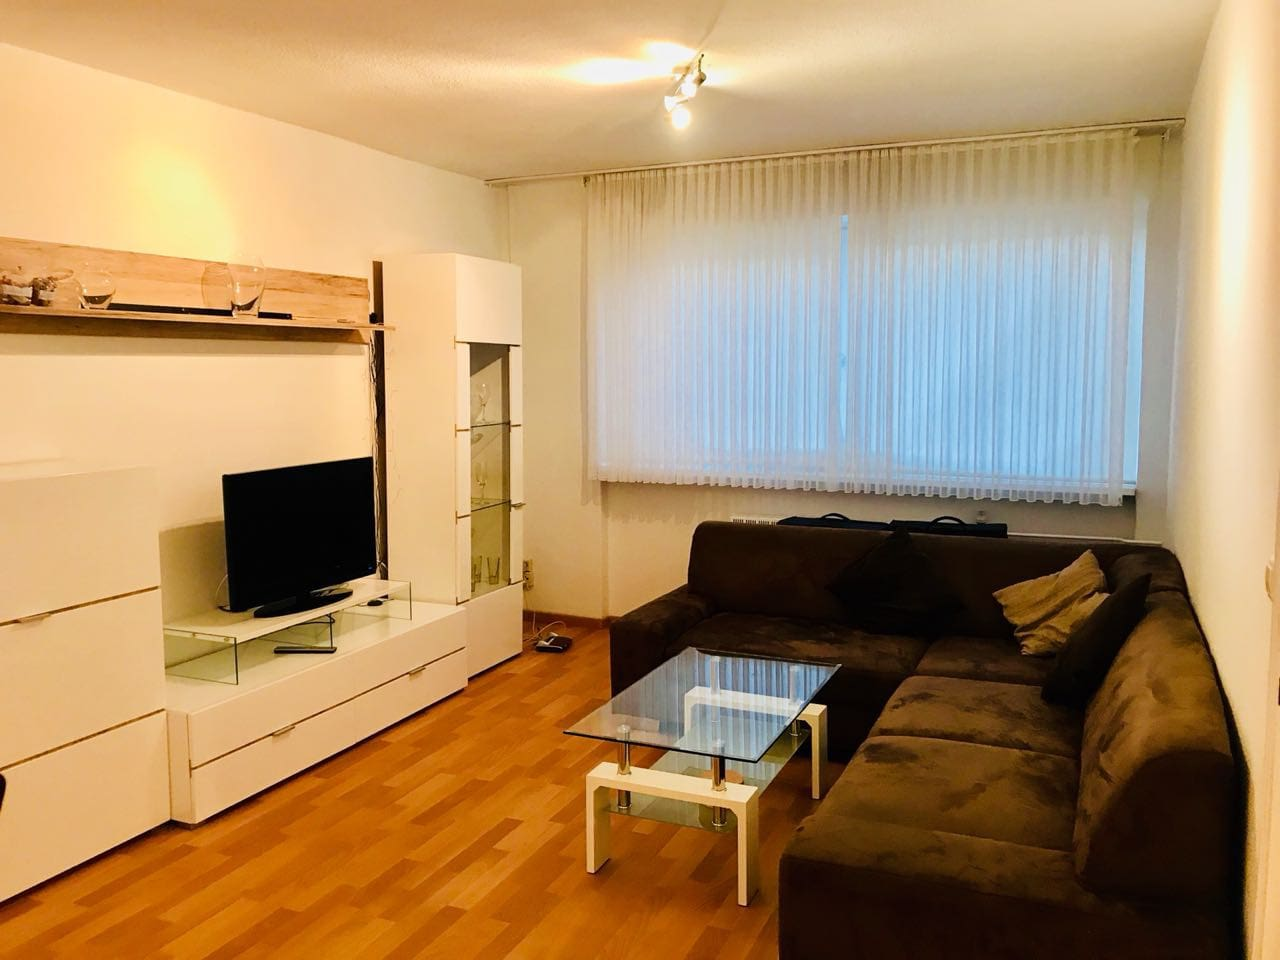 Living room with sofa bed, dining table, TV and Tea table